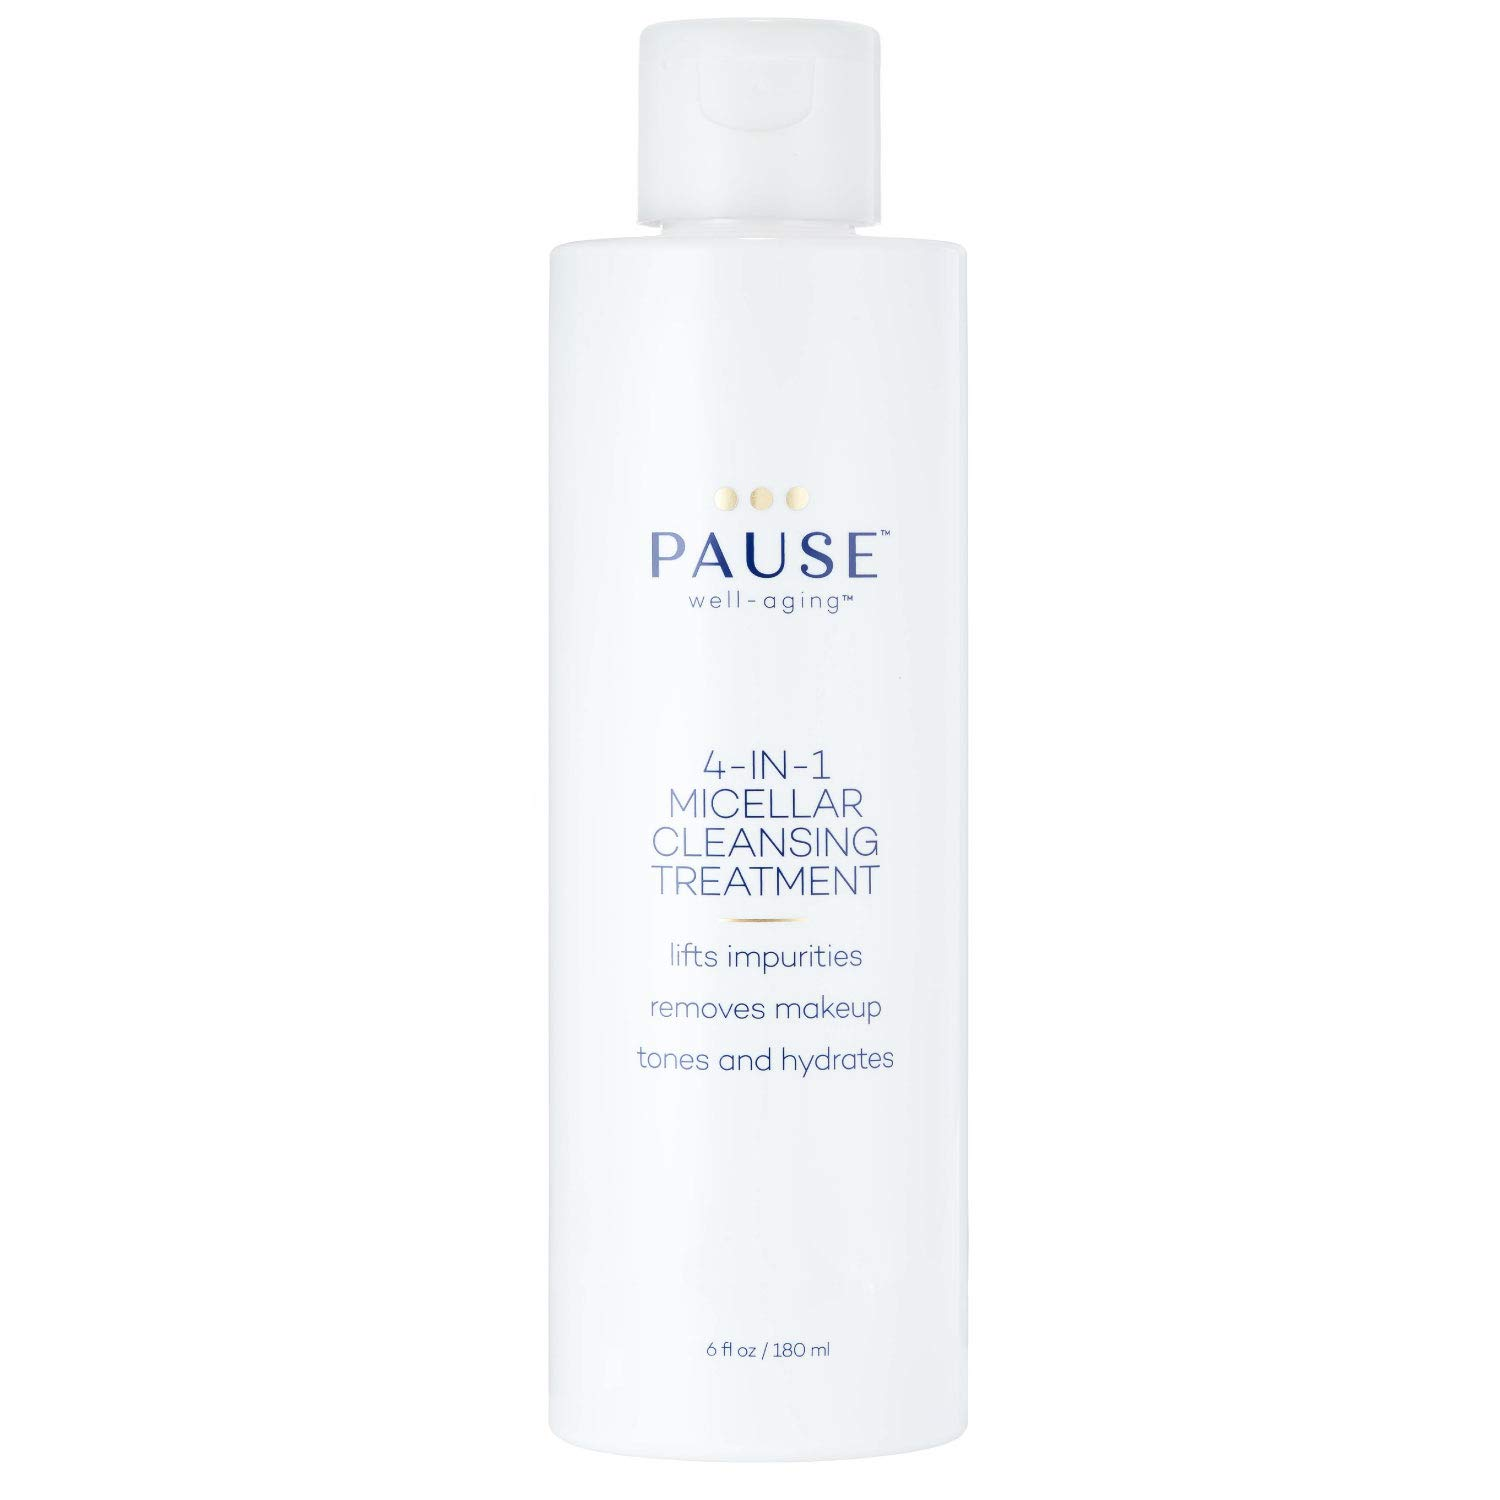 Pause 4-in-1 Micellar Cleansing Treatment